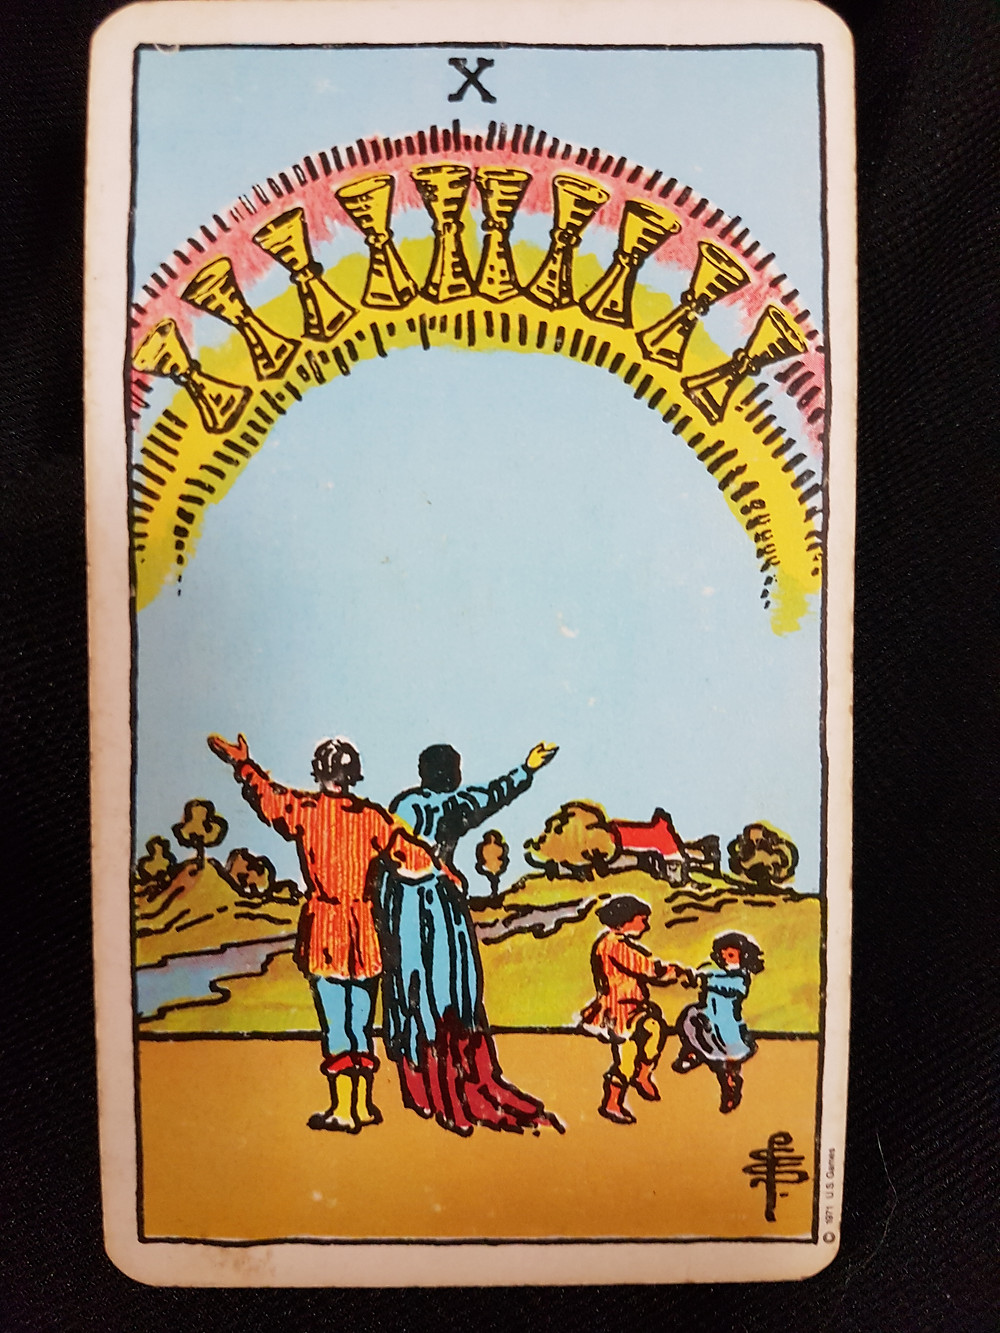 10 of Cups -lynsreadings.com